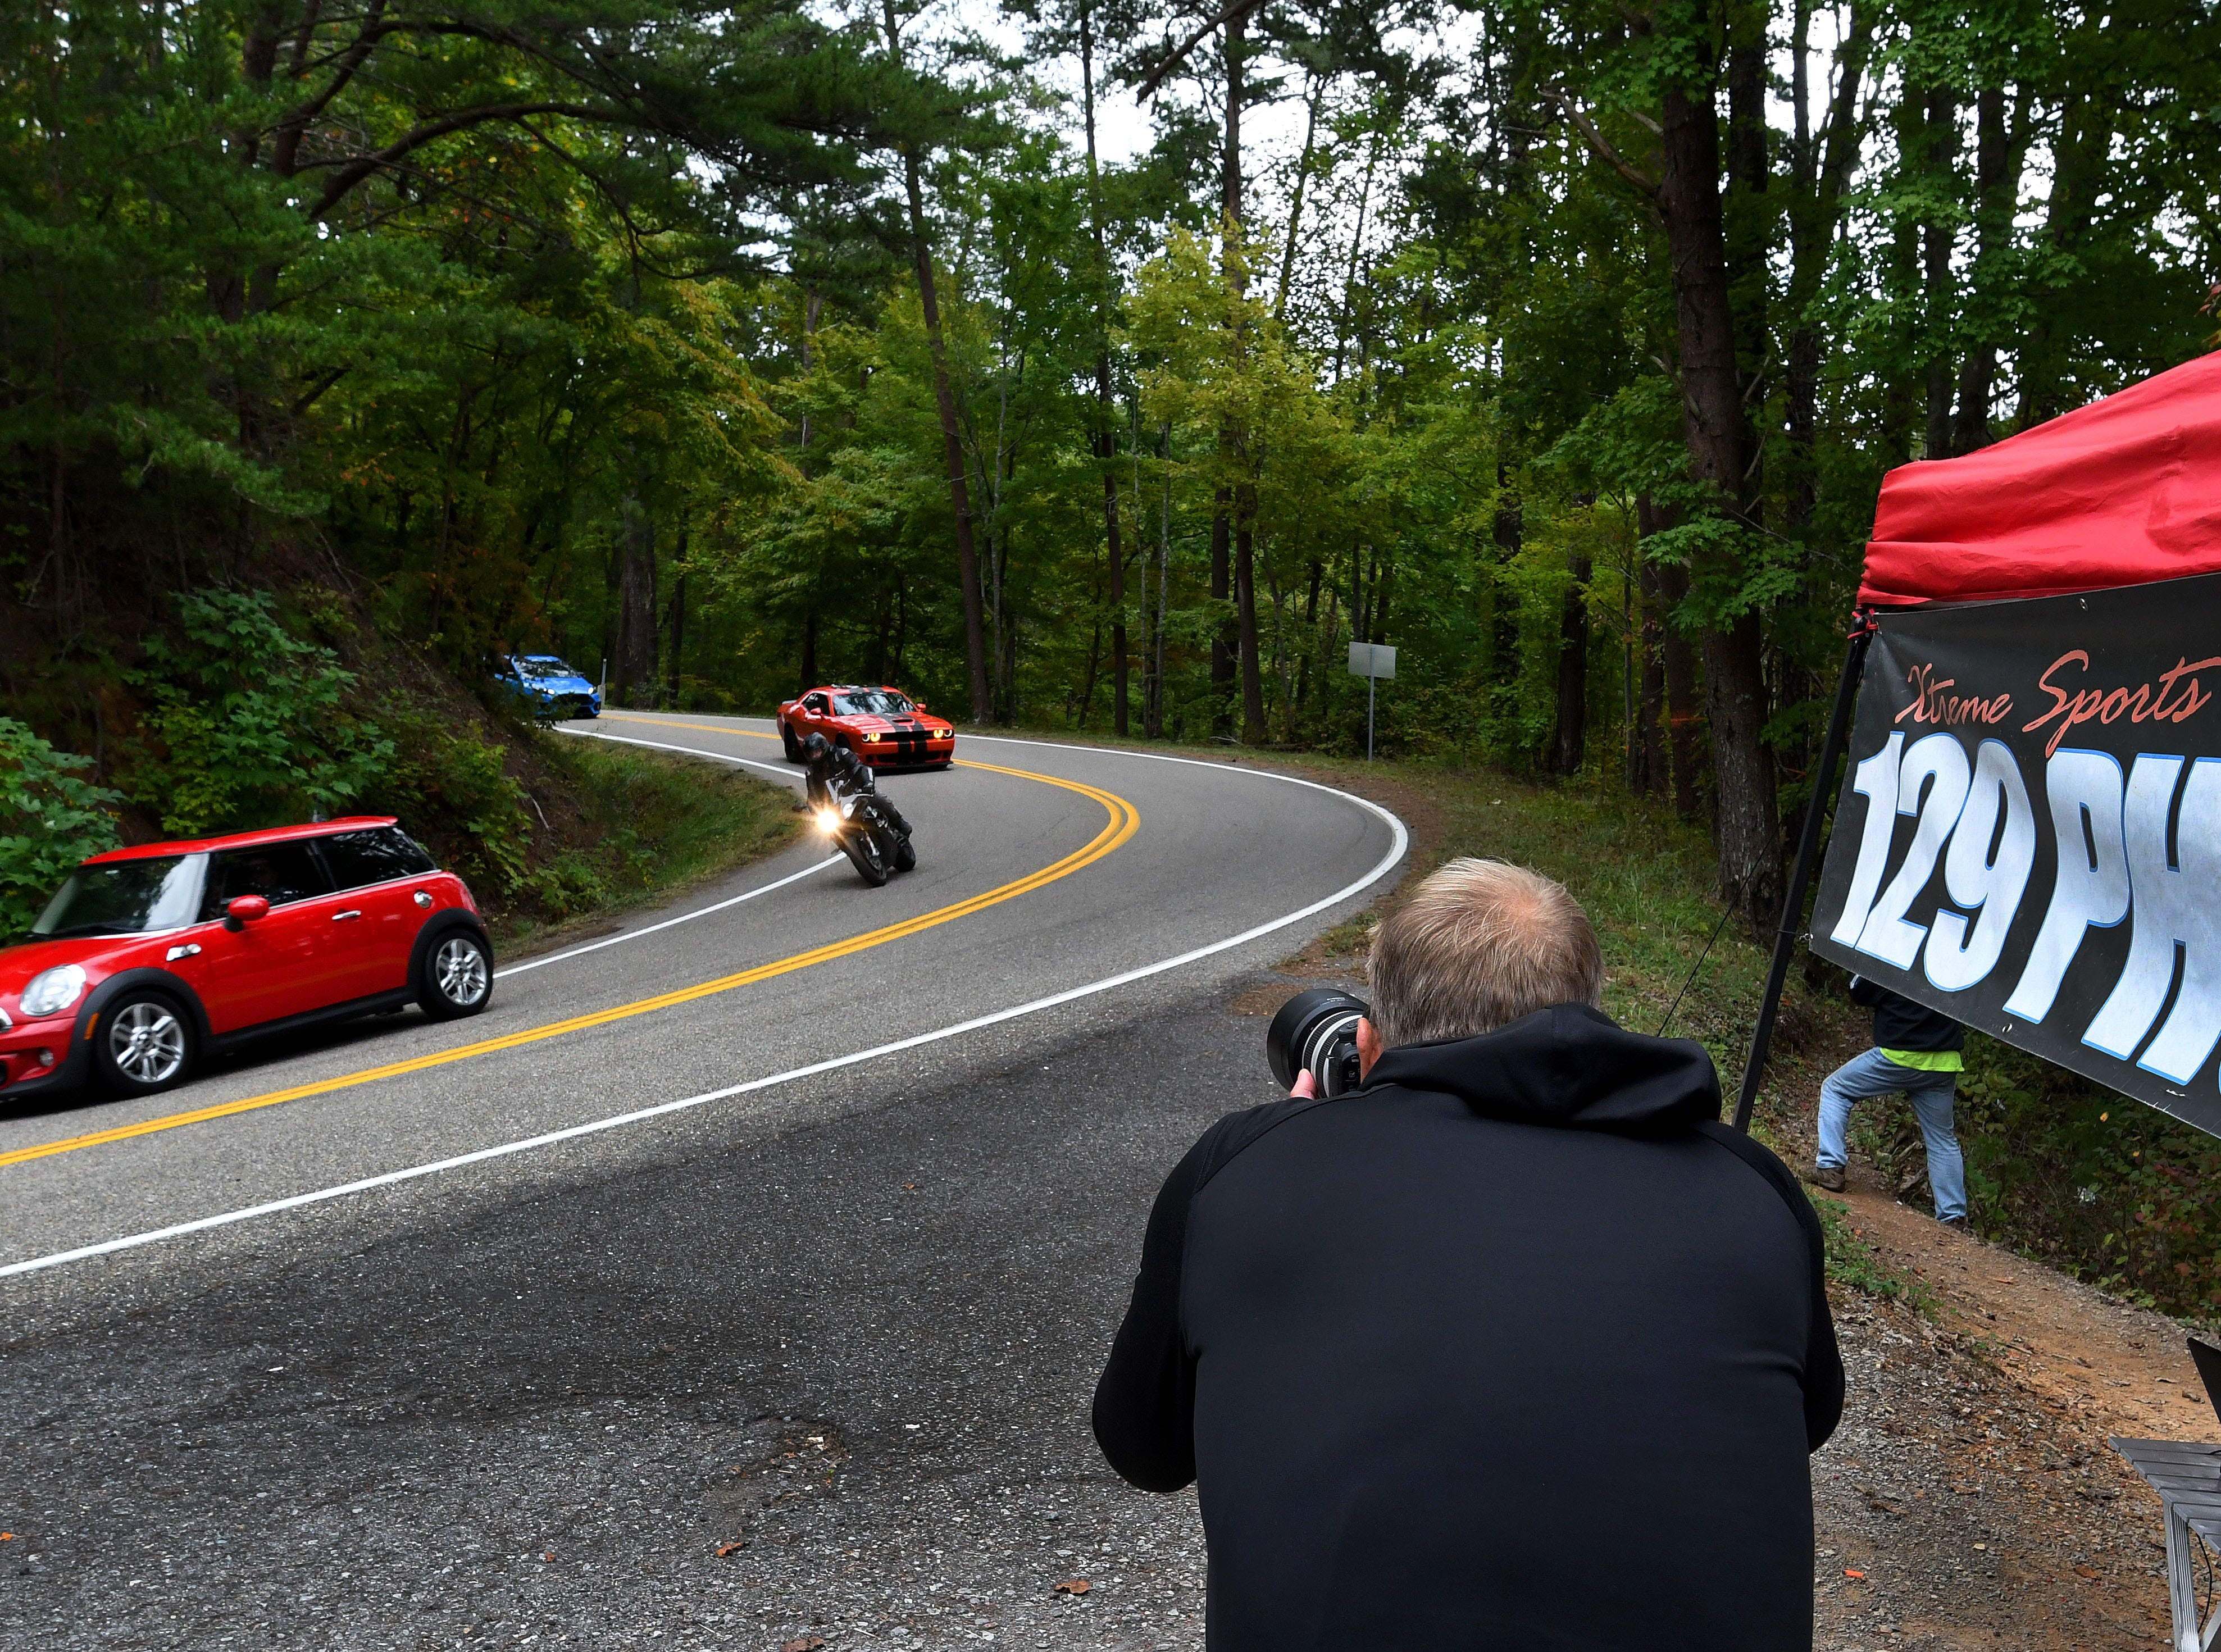 The Dragon is a section of US129 in Tennessee and North Carolina famous for it's 318 curves in 11 miles Saturday, Oct. 13, 2018. Kevin Netto is a photographer with Extreme Sports Photography and 129photos.com and is one of several companies shooting photos of vehicles traveling on the Dragon.